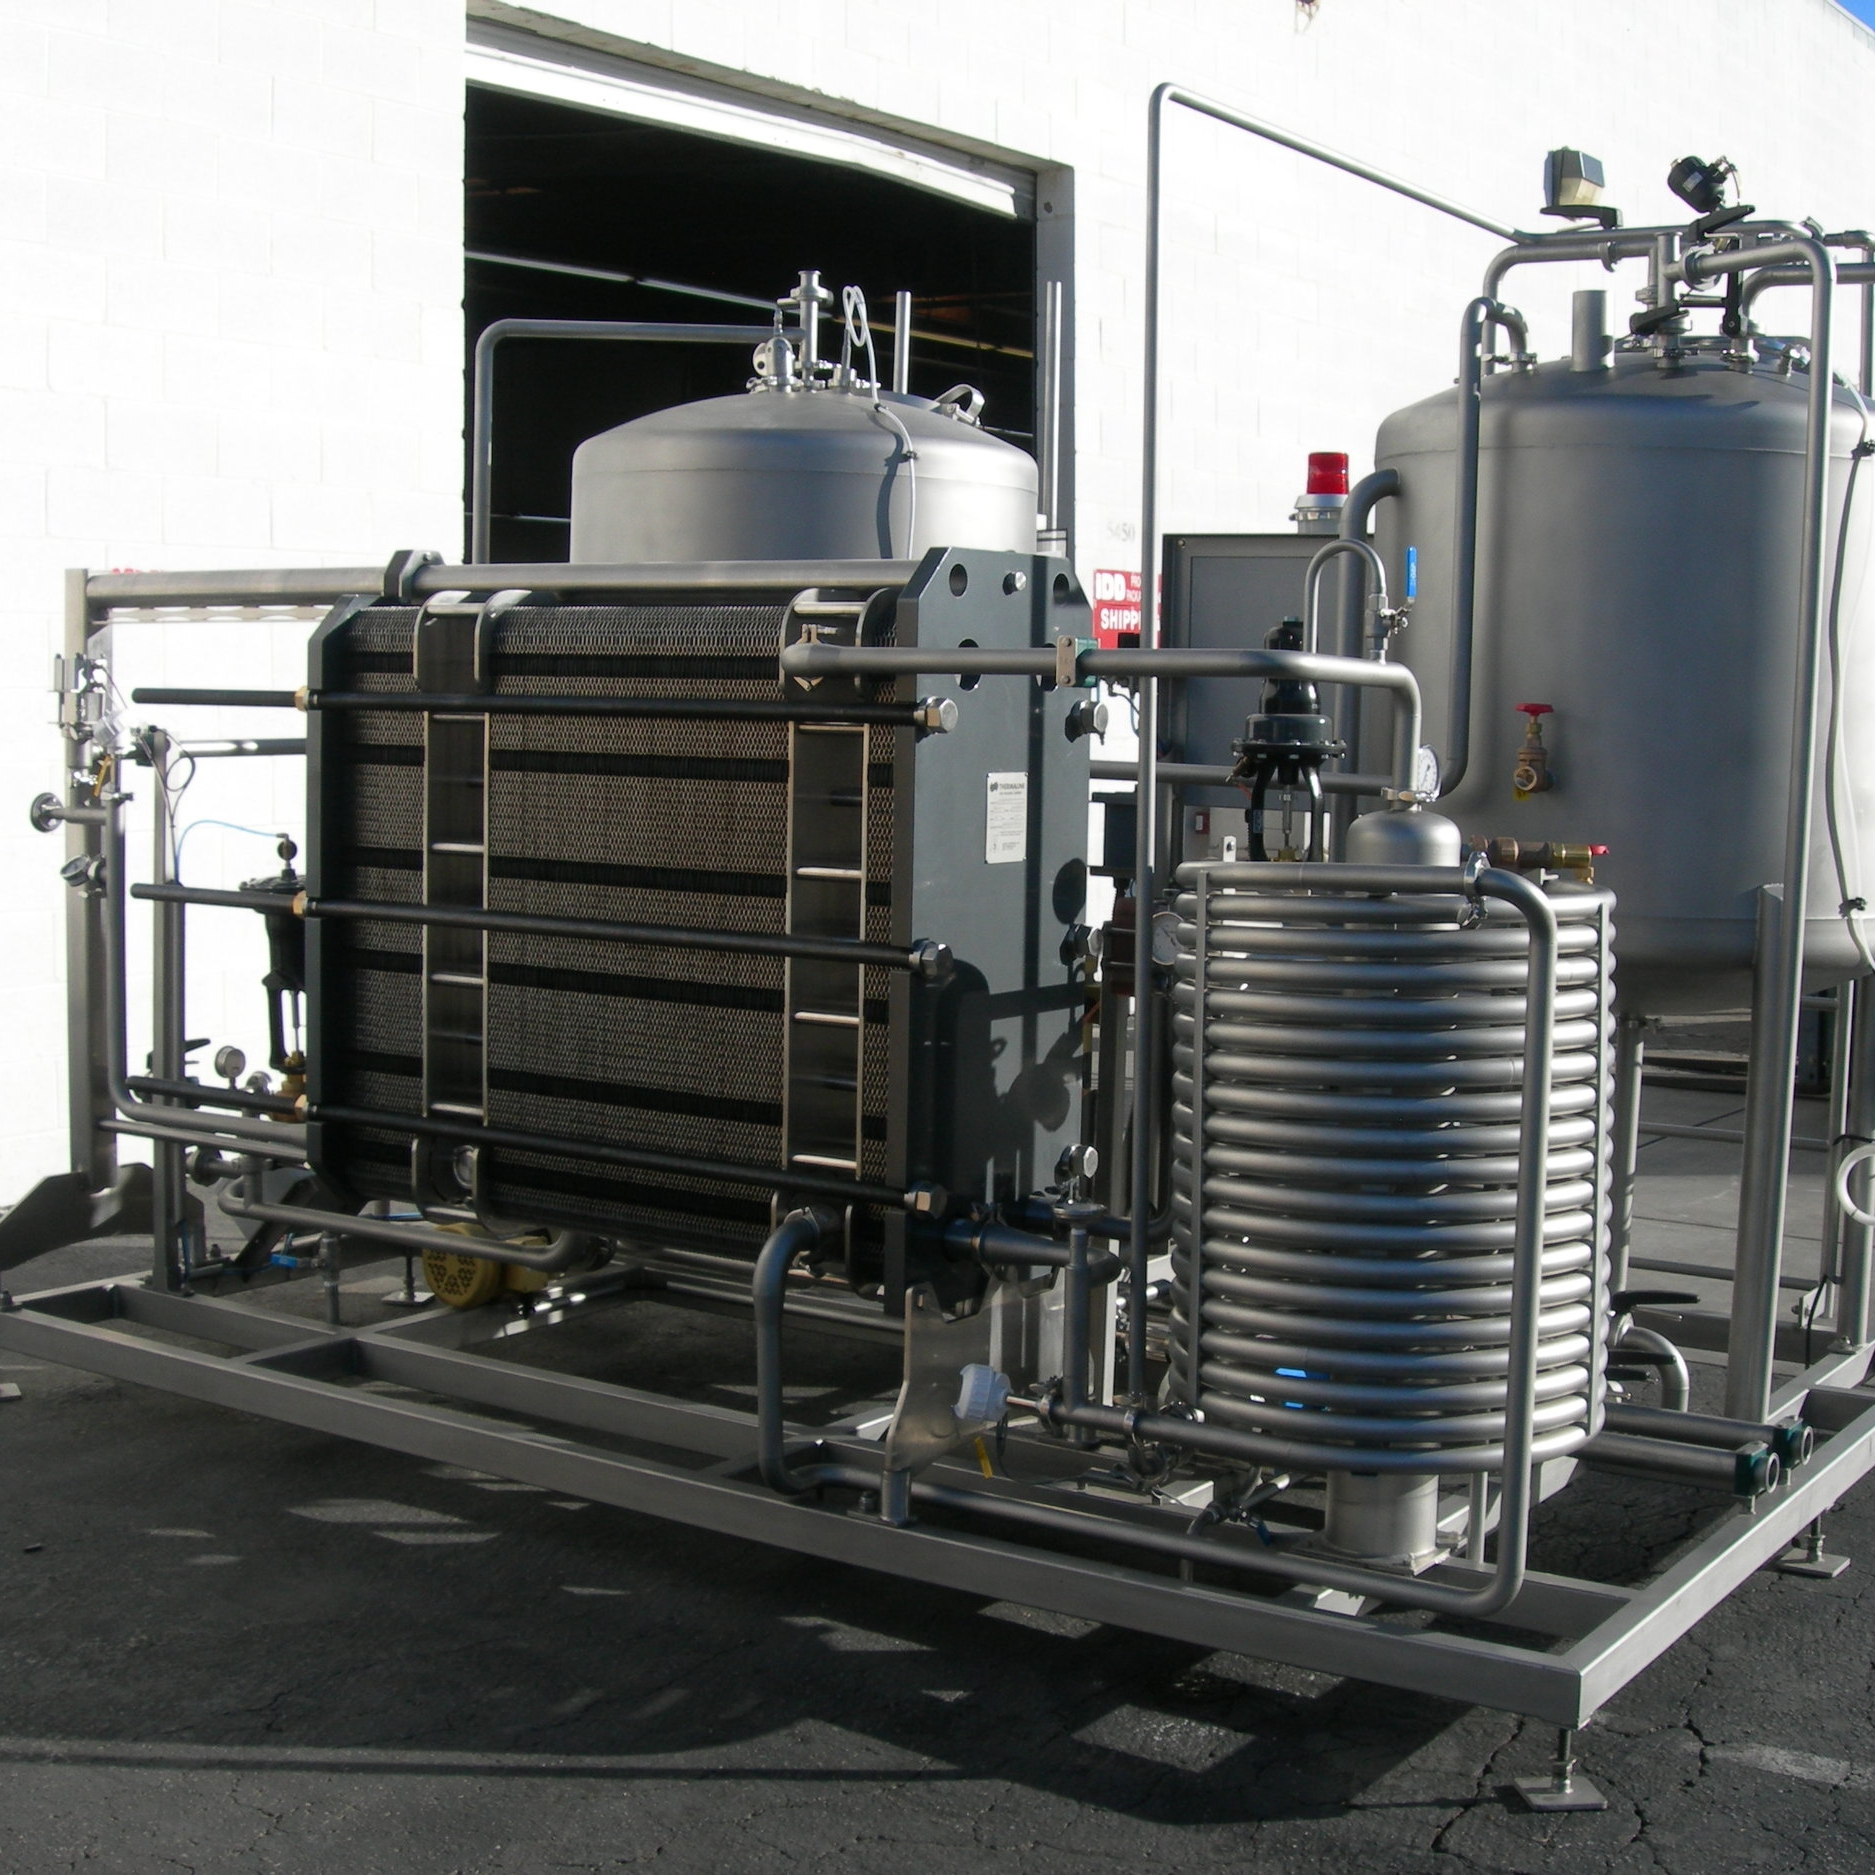 FP3 - Up to 70 hL/hrFor moderate to large beverage plants, the FP3 provides quick and efficient flash pasteurization that can keep up with demanding production lines.